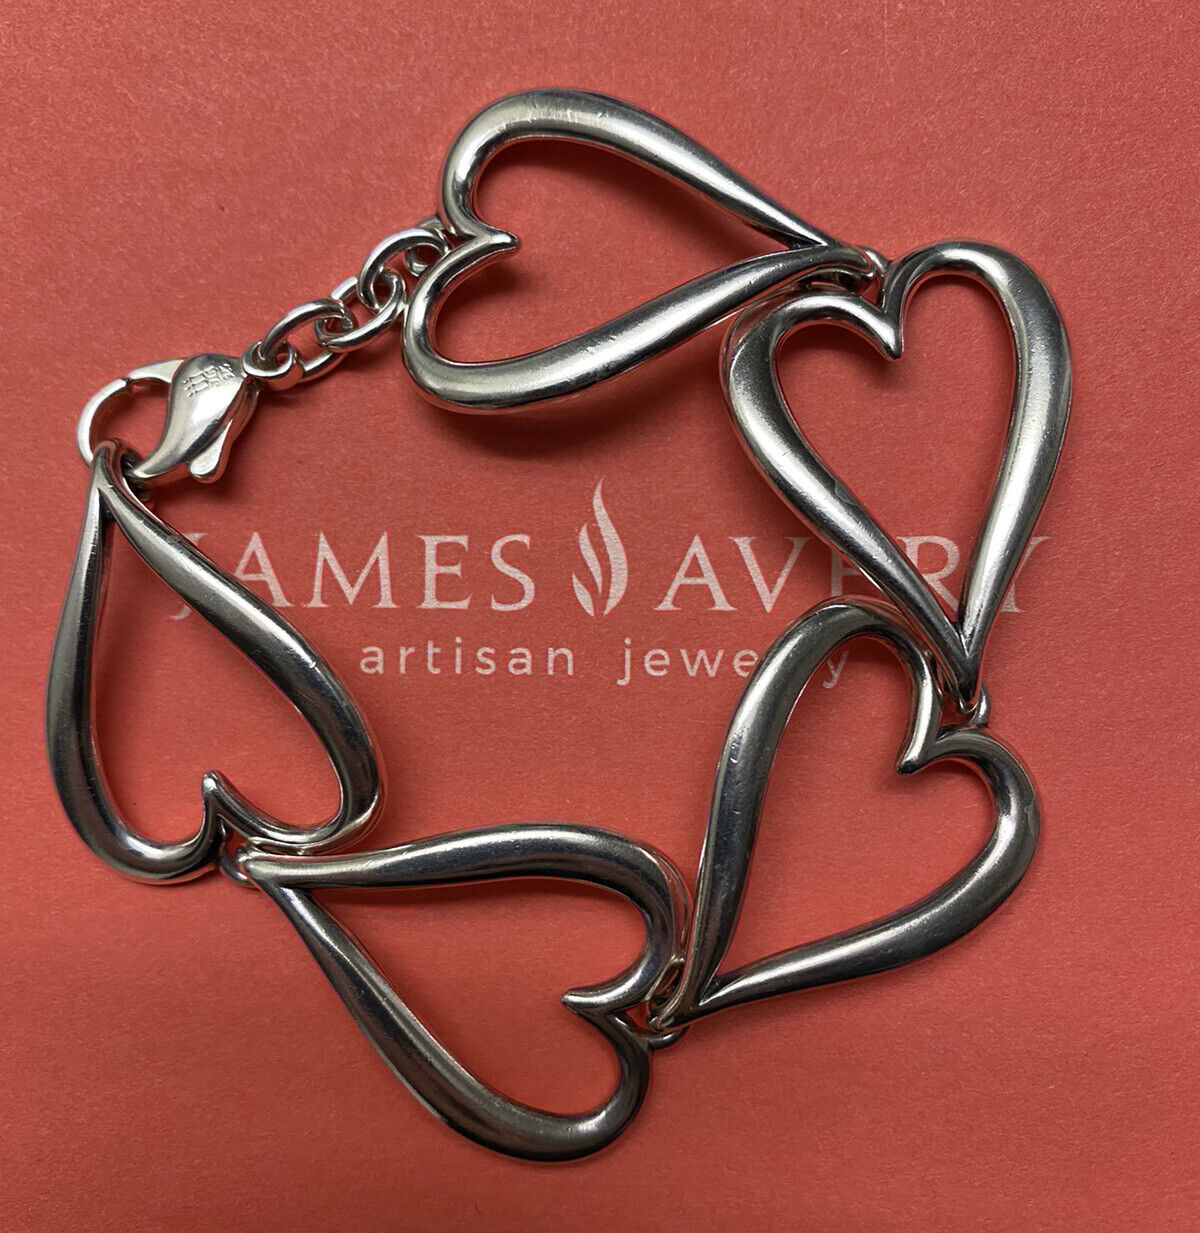 28.3 grams Lovely retro chic quality chunky 8 ITALIAN STERLING BRACELET classic classy elegant but wearable statement piece.